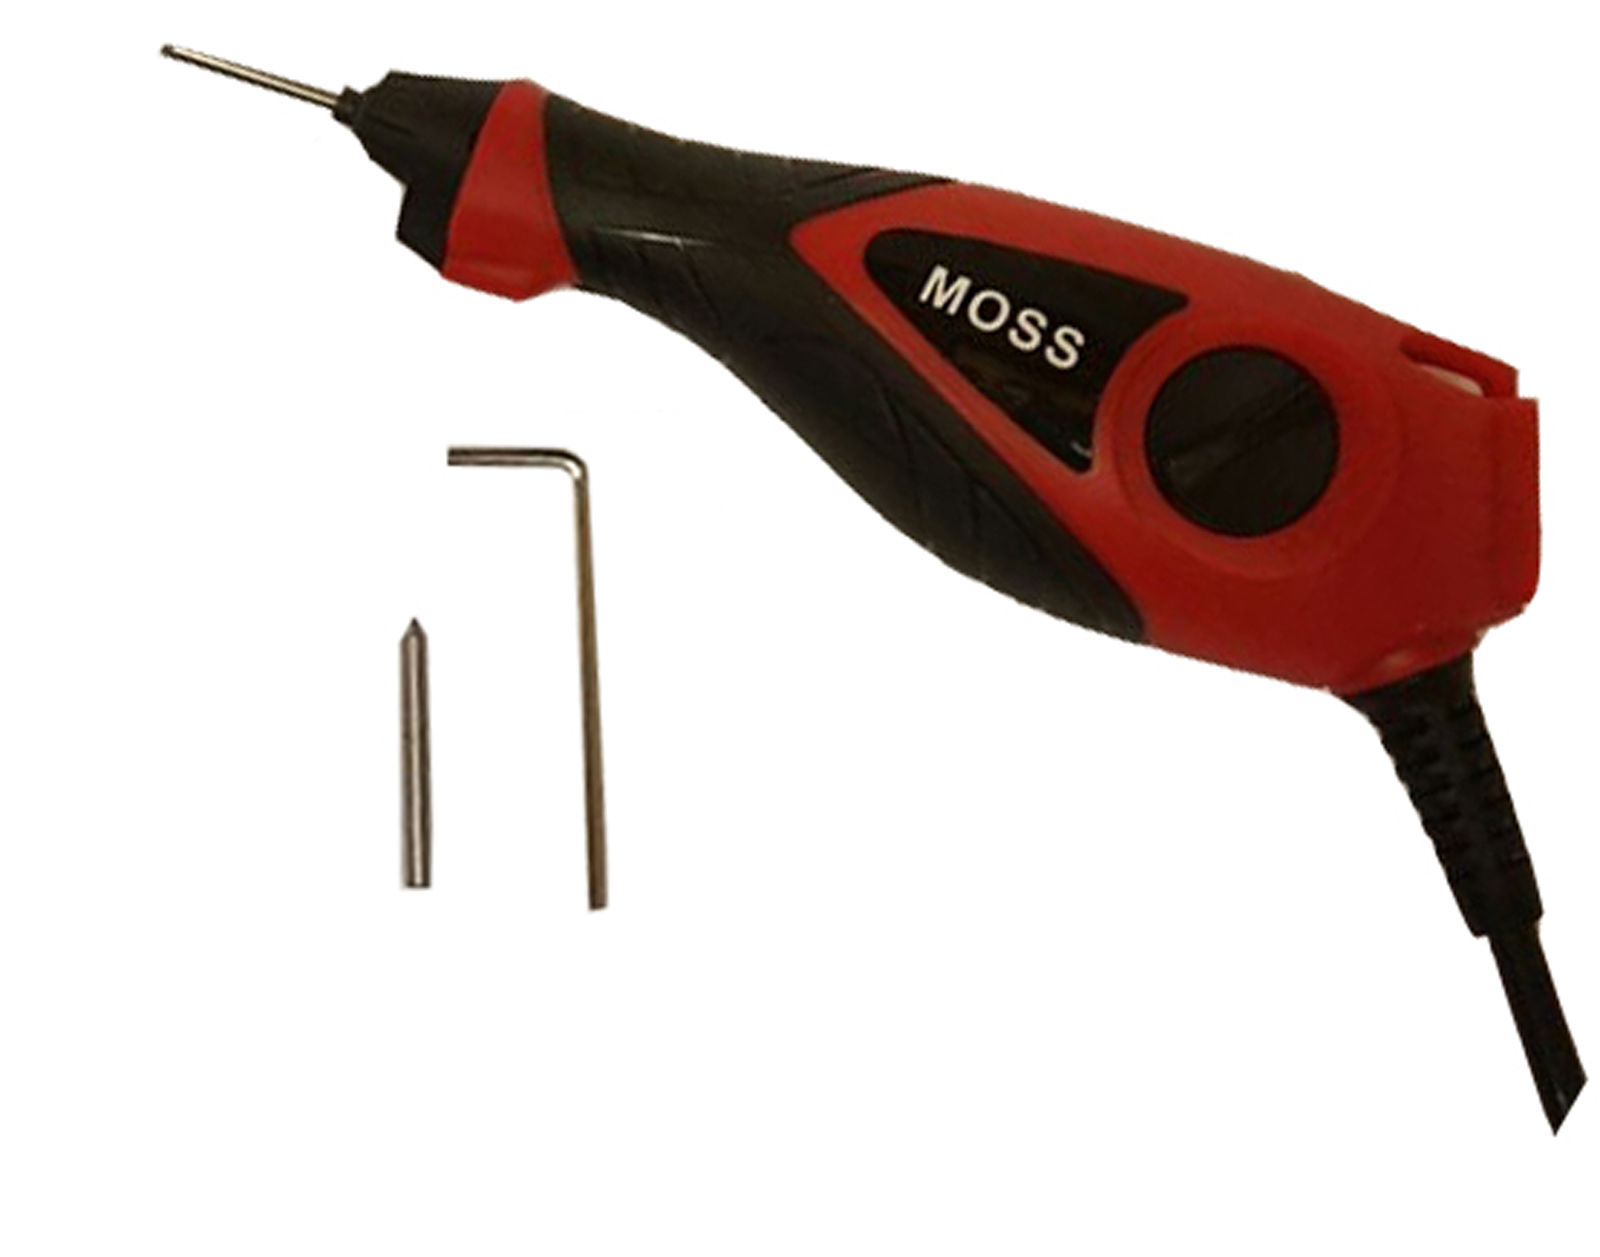 Moss Electric Floor Wall Grout Out Removal Rotary Tool Rake Tool